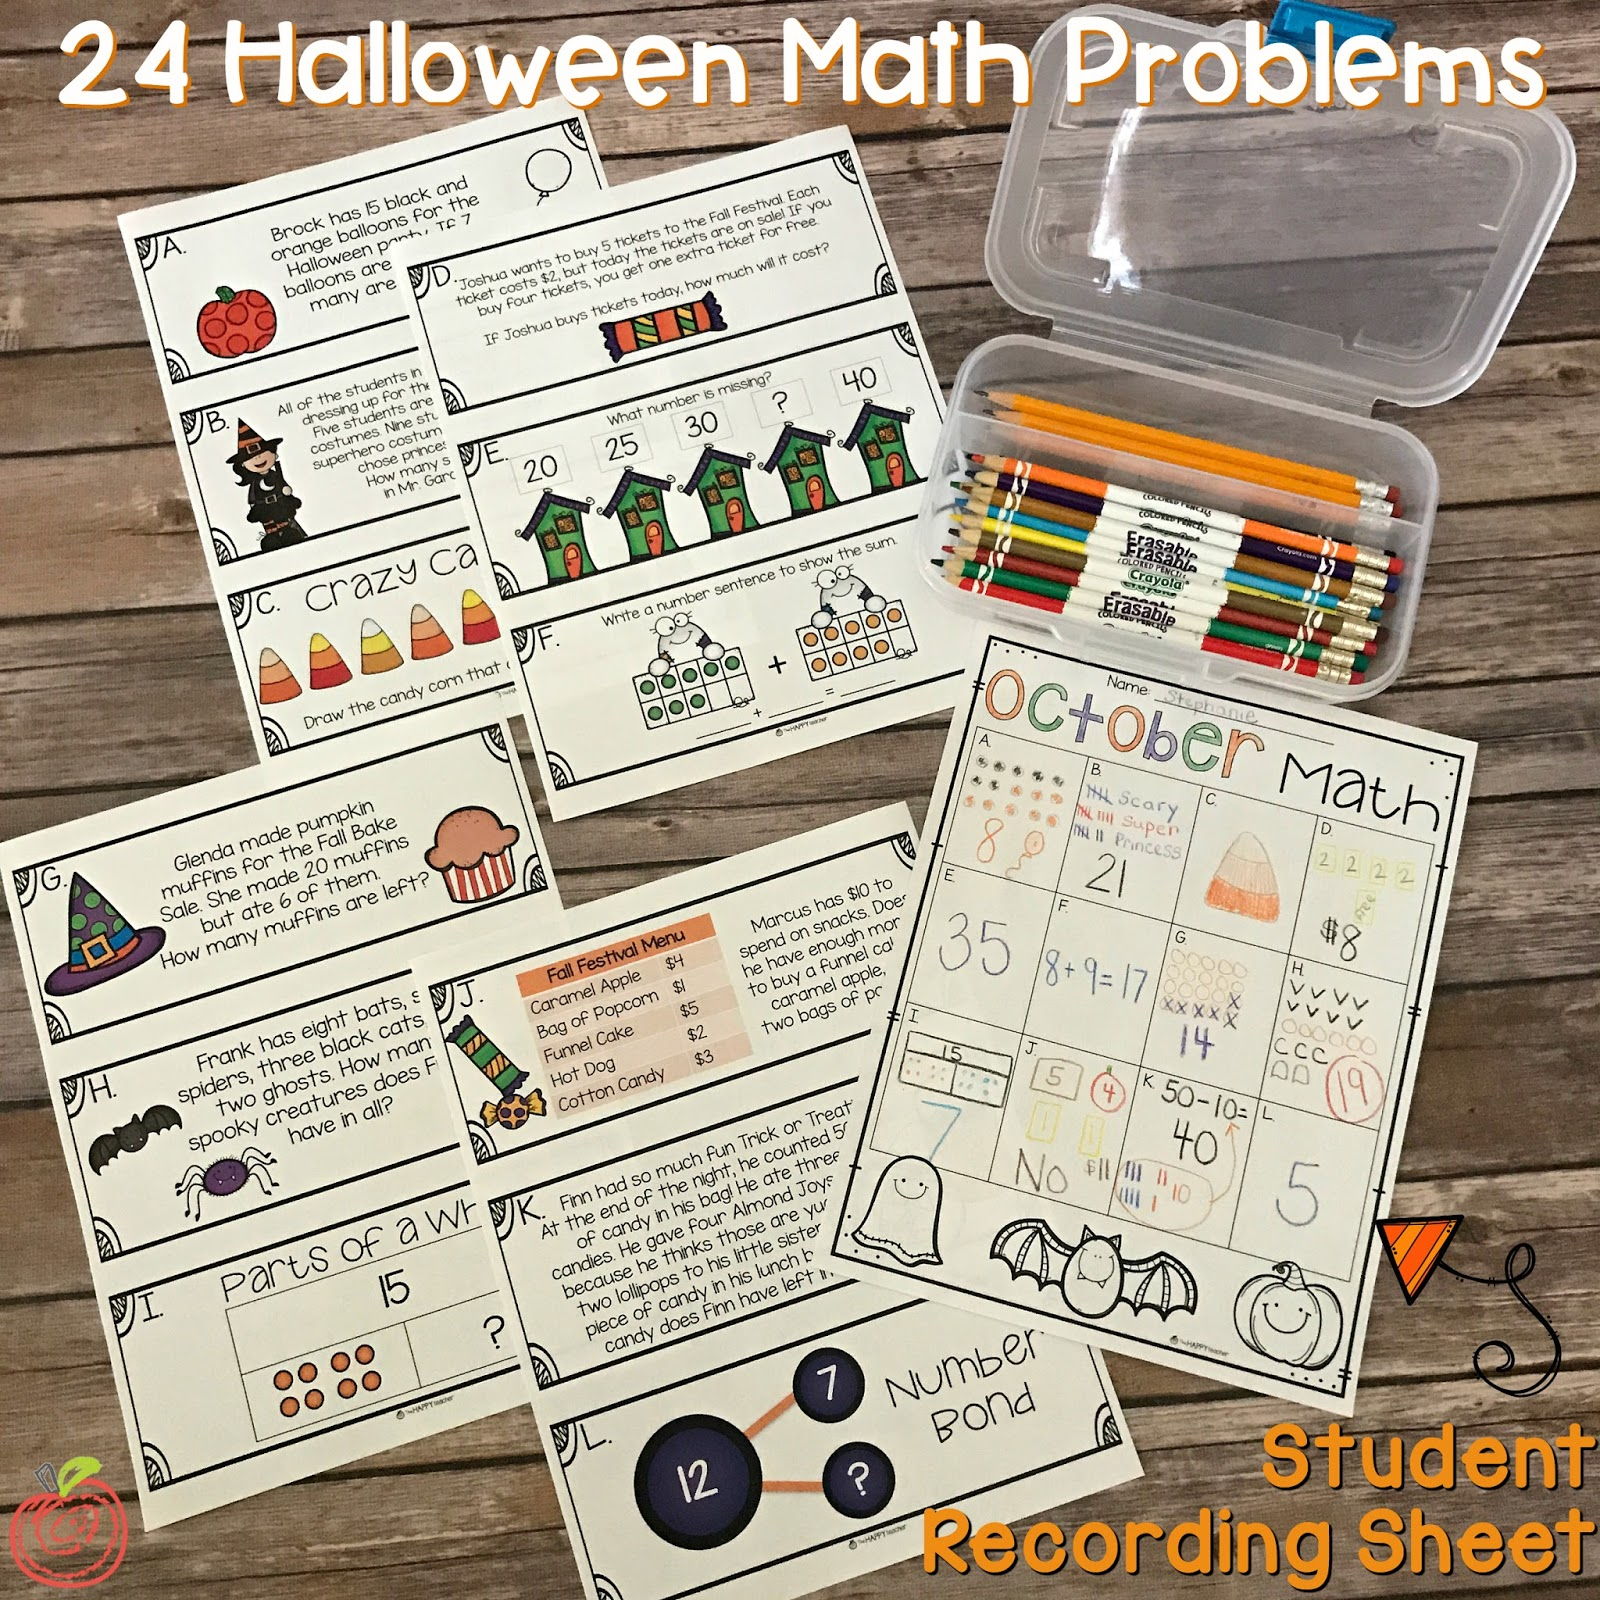 October Math Halloween Math Problems